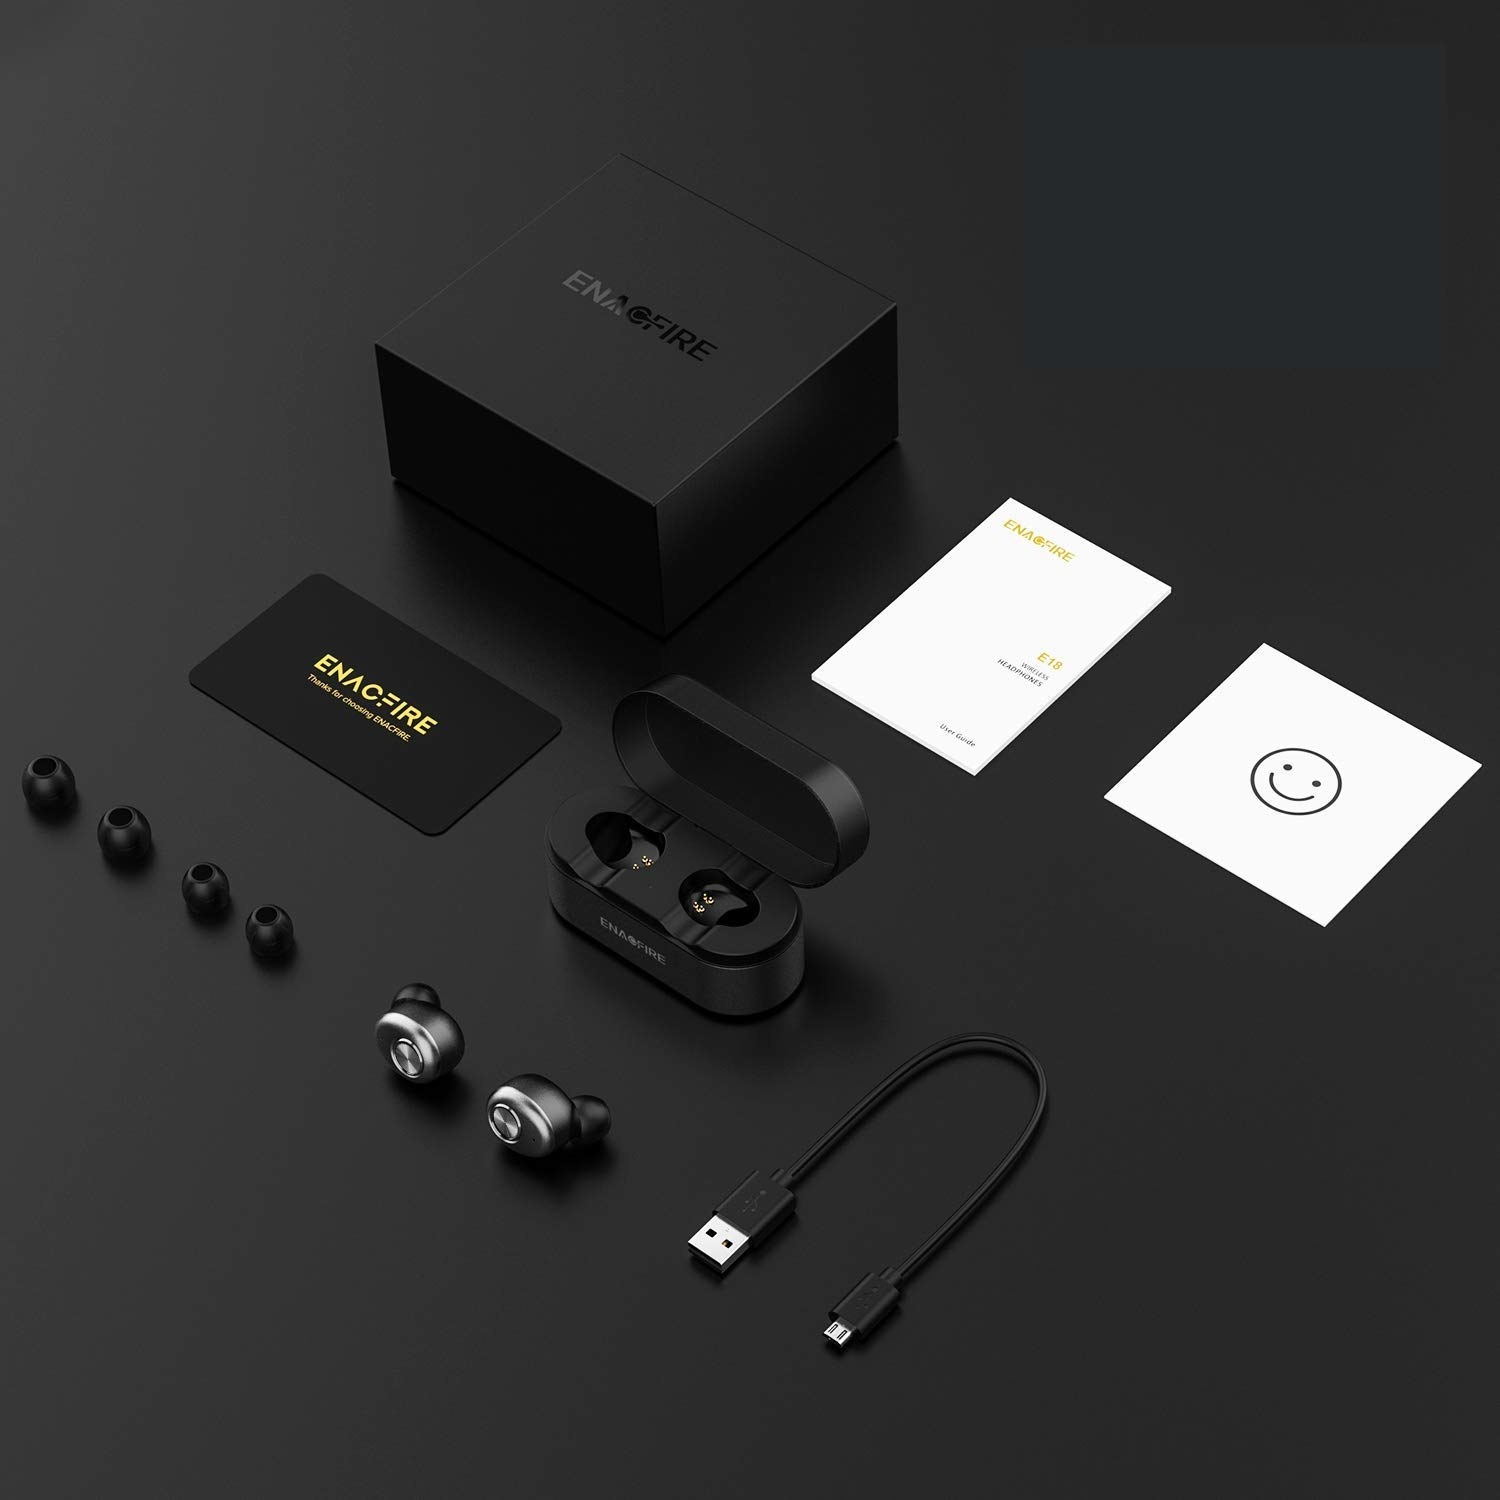 A flatlay of all the elements of the headphones, including a charging cable and two sets of replacement earpieces.